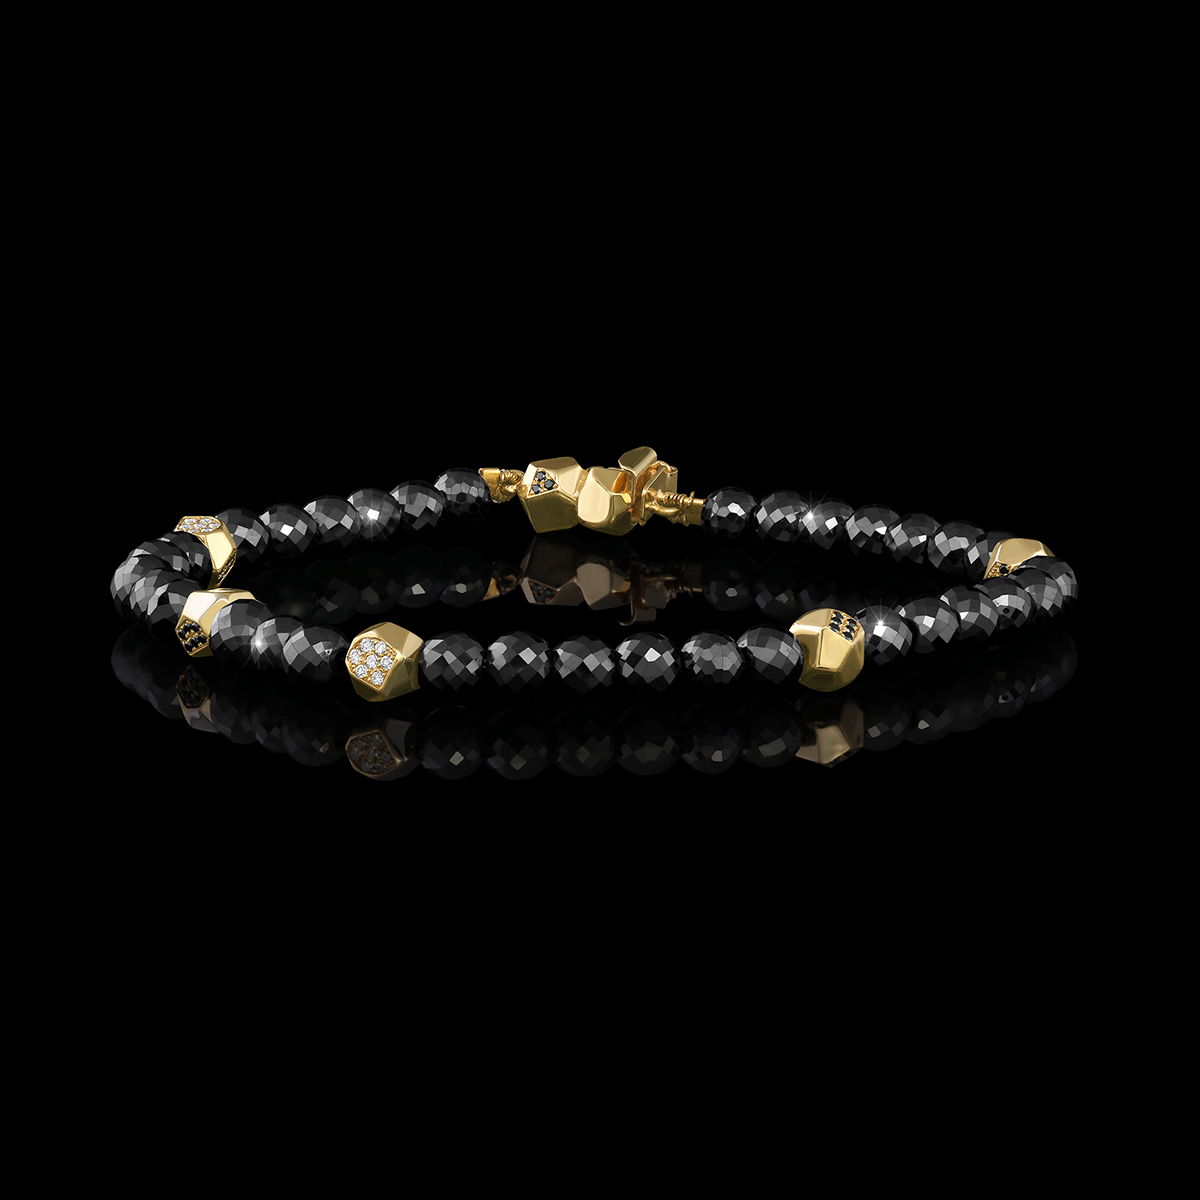 Black Diamond, White Diamond & Gold Bracelet | Baccara